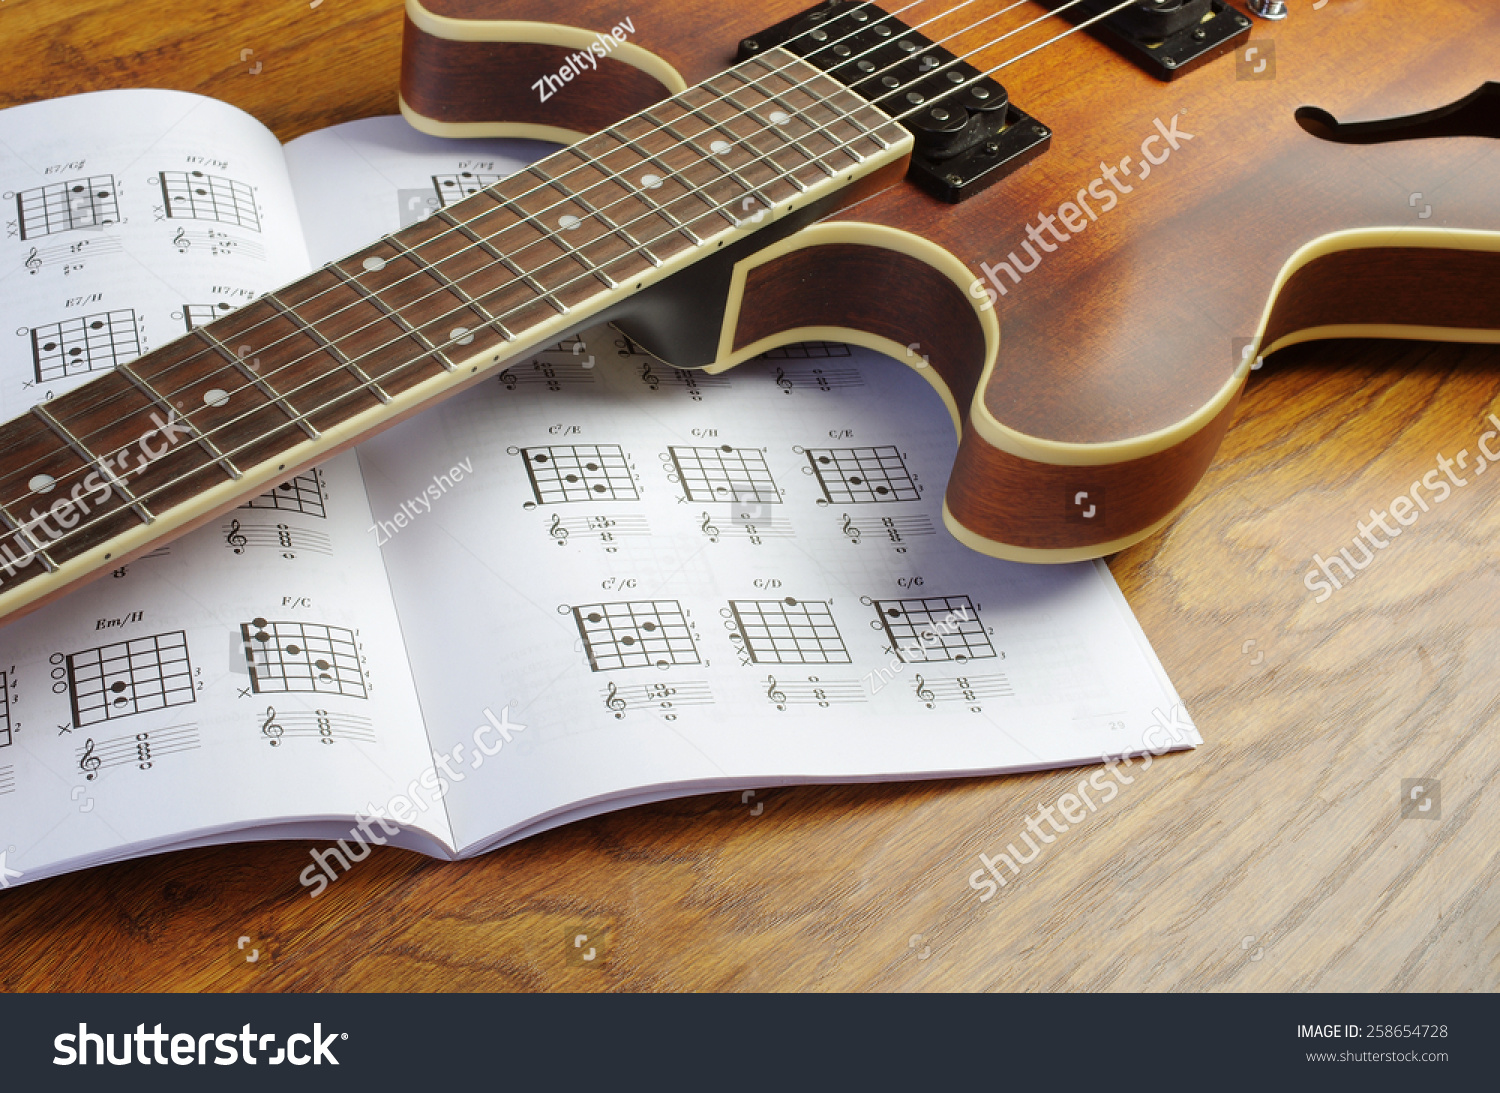 Guitar And Guitar Chords Stock Photo 258654728 : Shutterstock